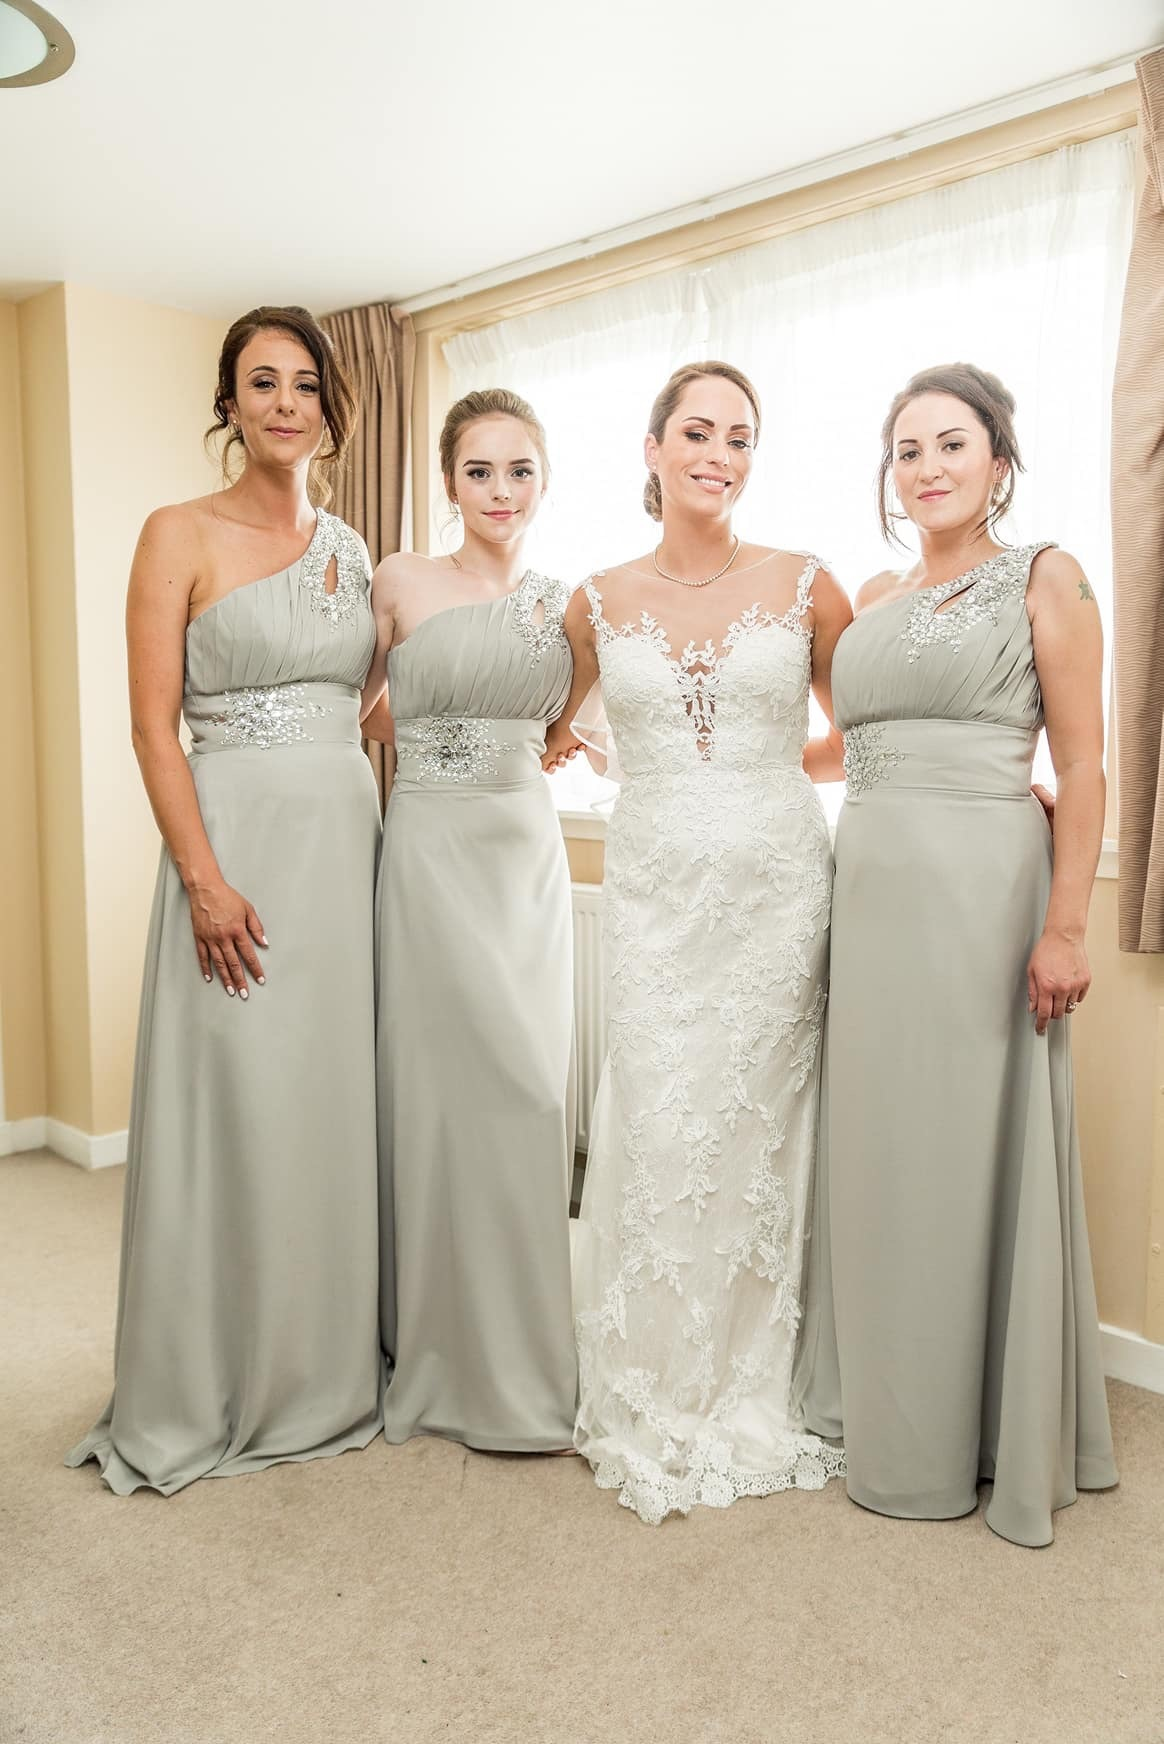 Catrina and her bridal party